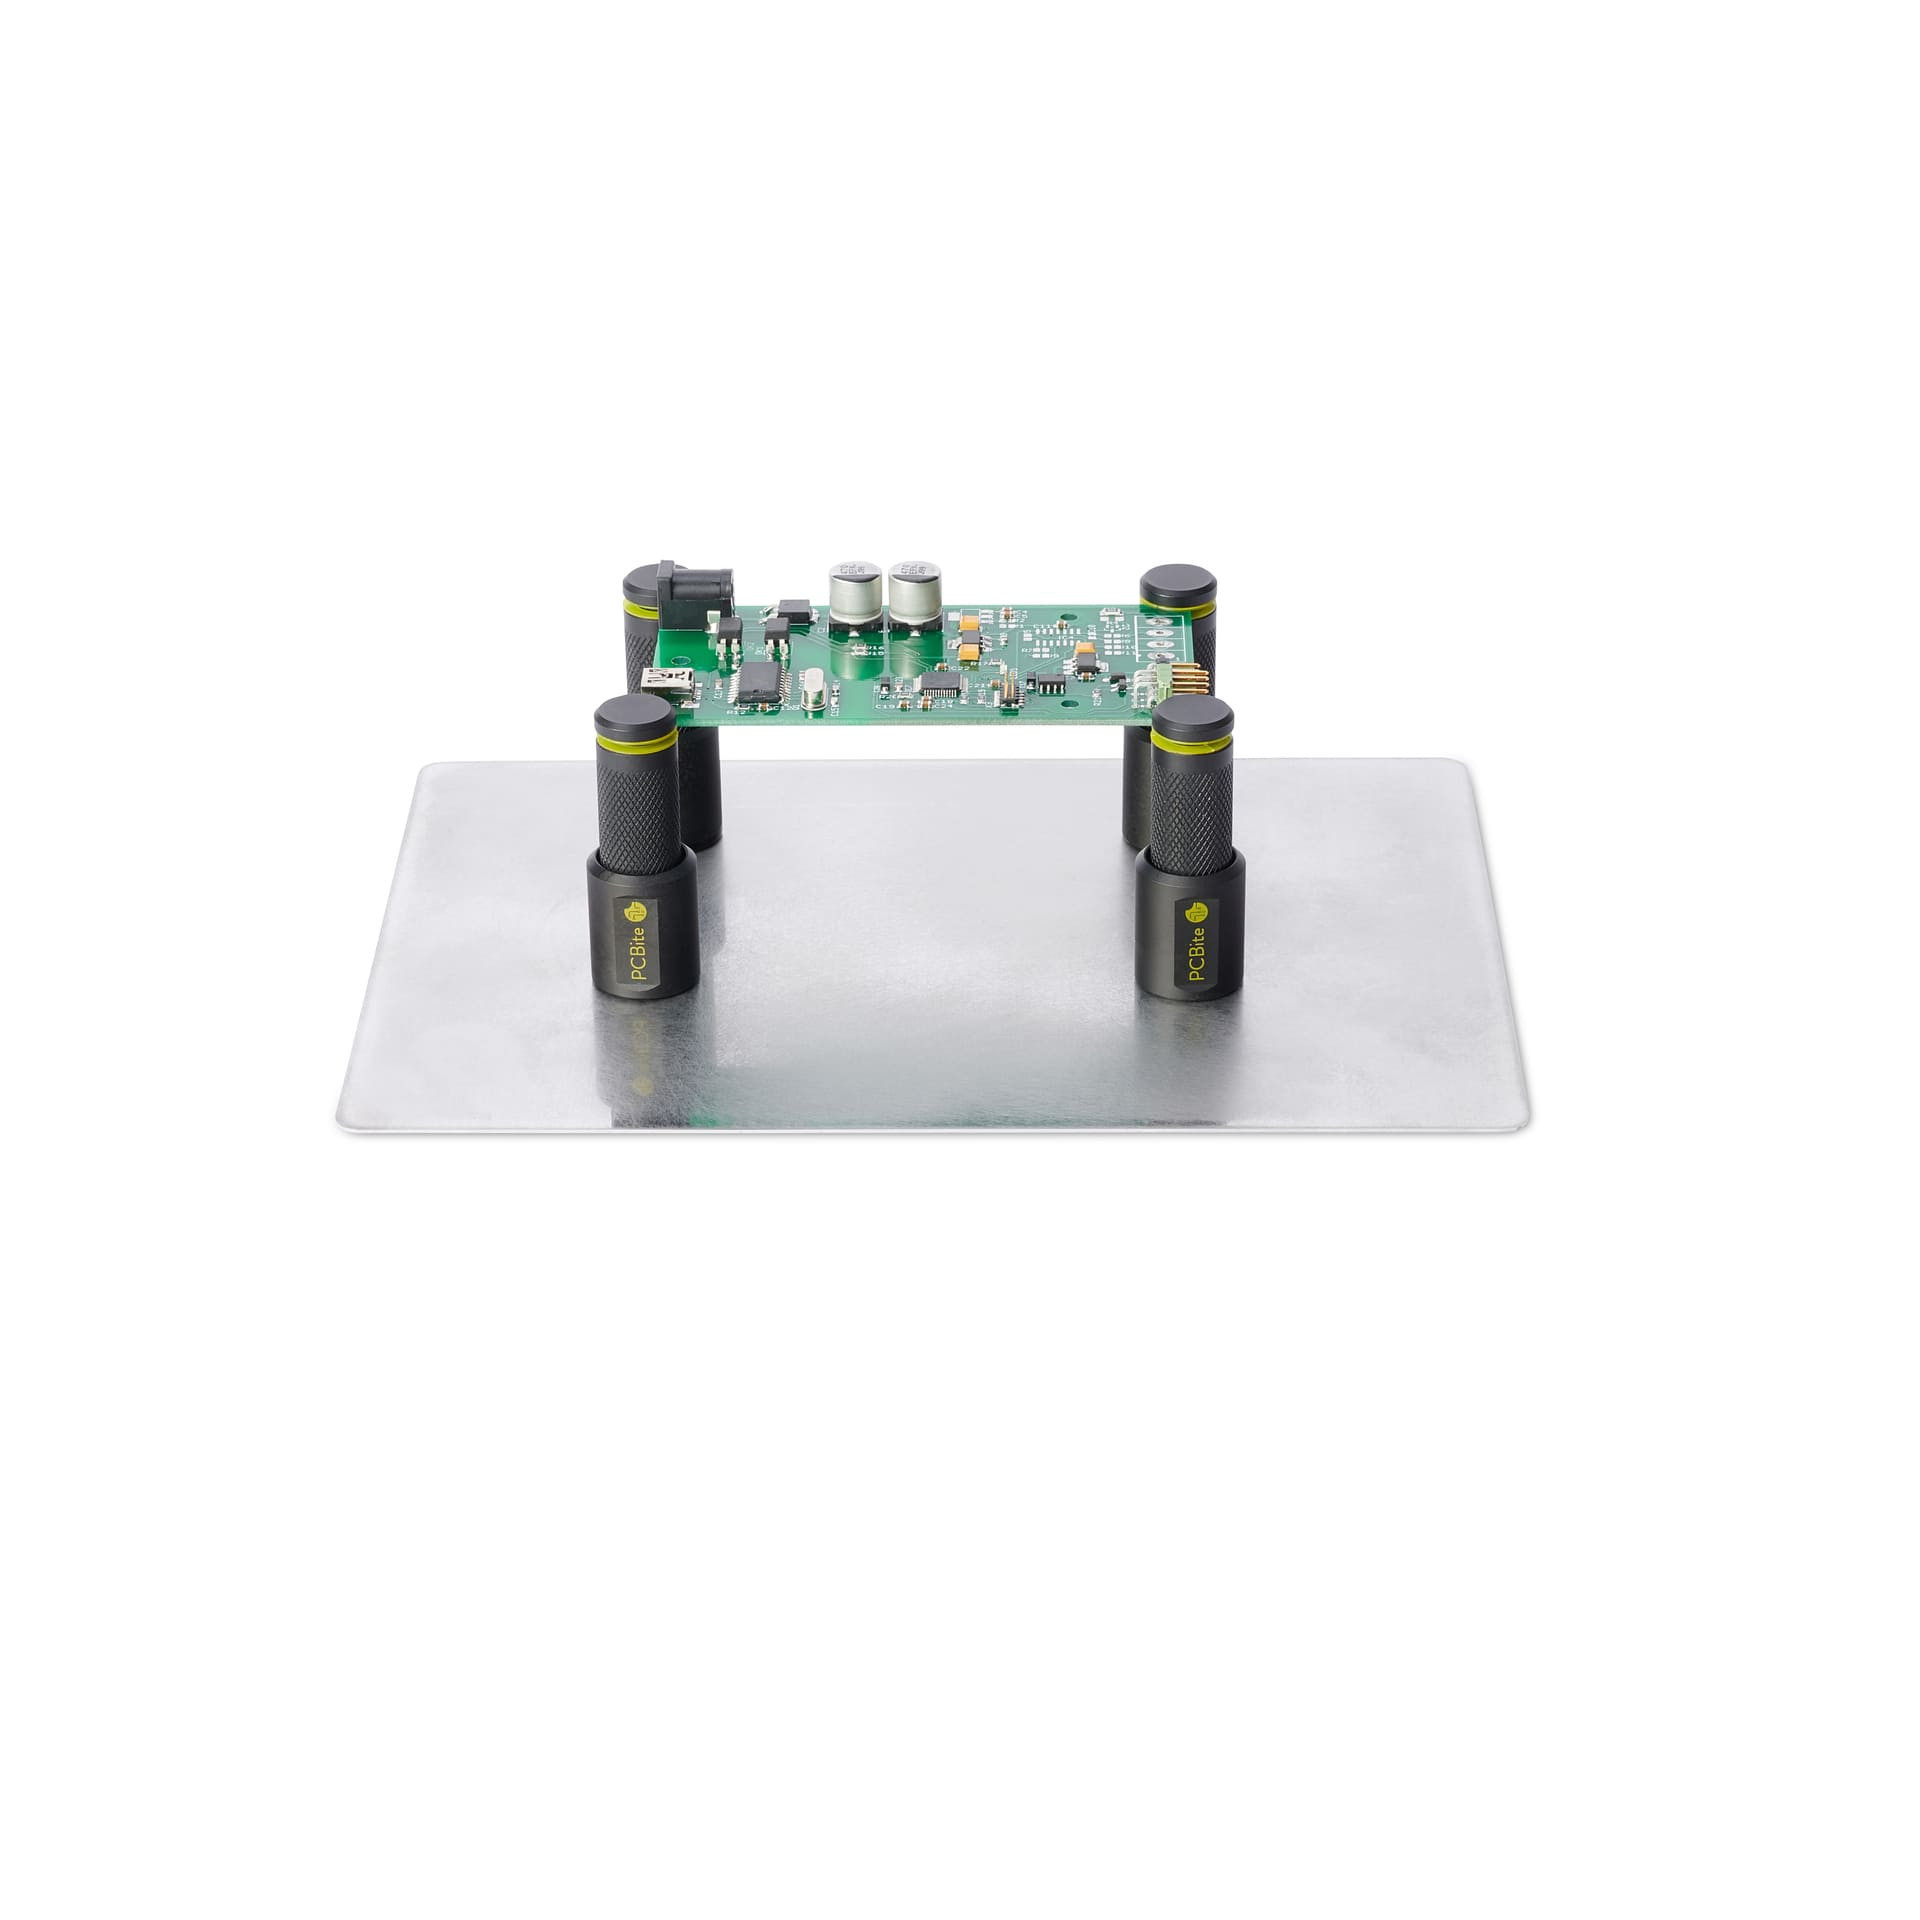 PCBite kit small base plate with 4 holders